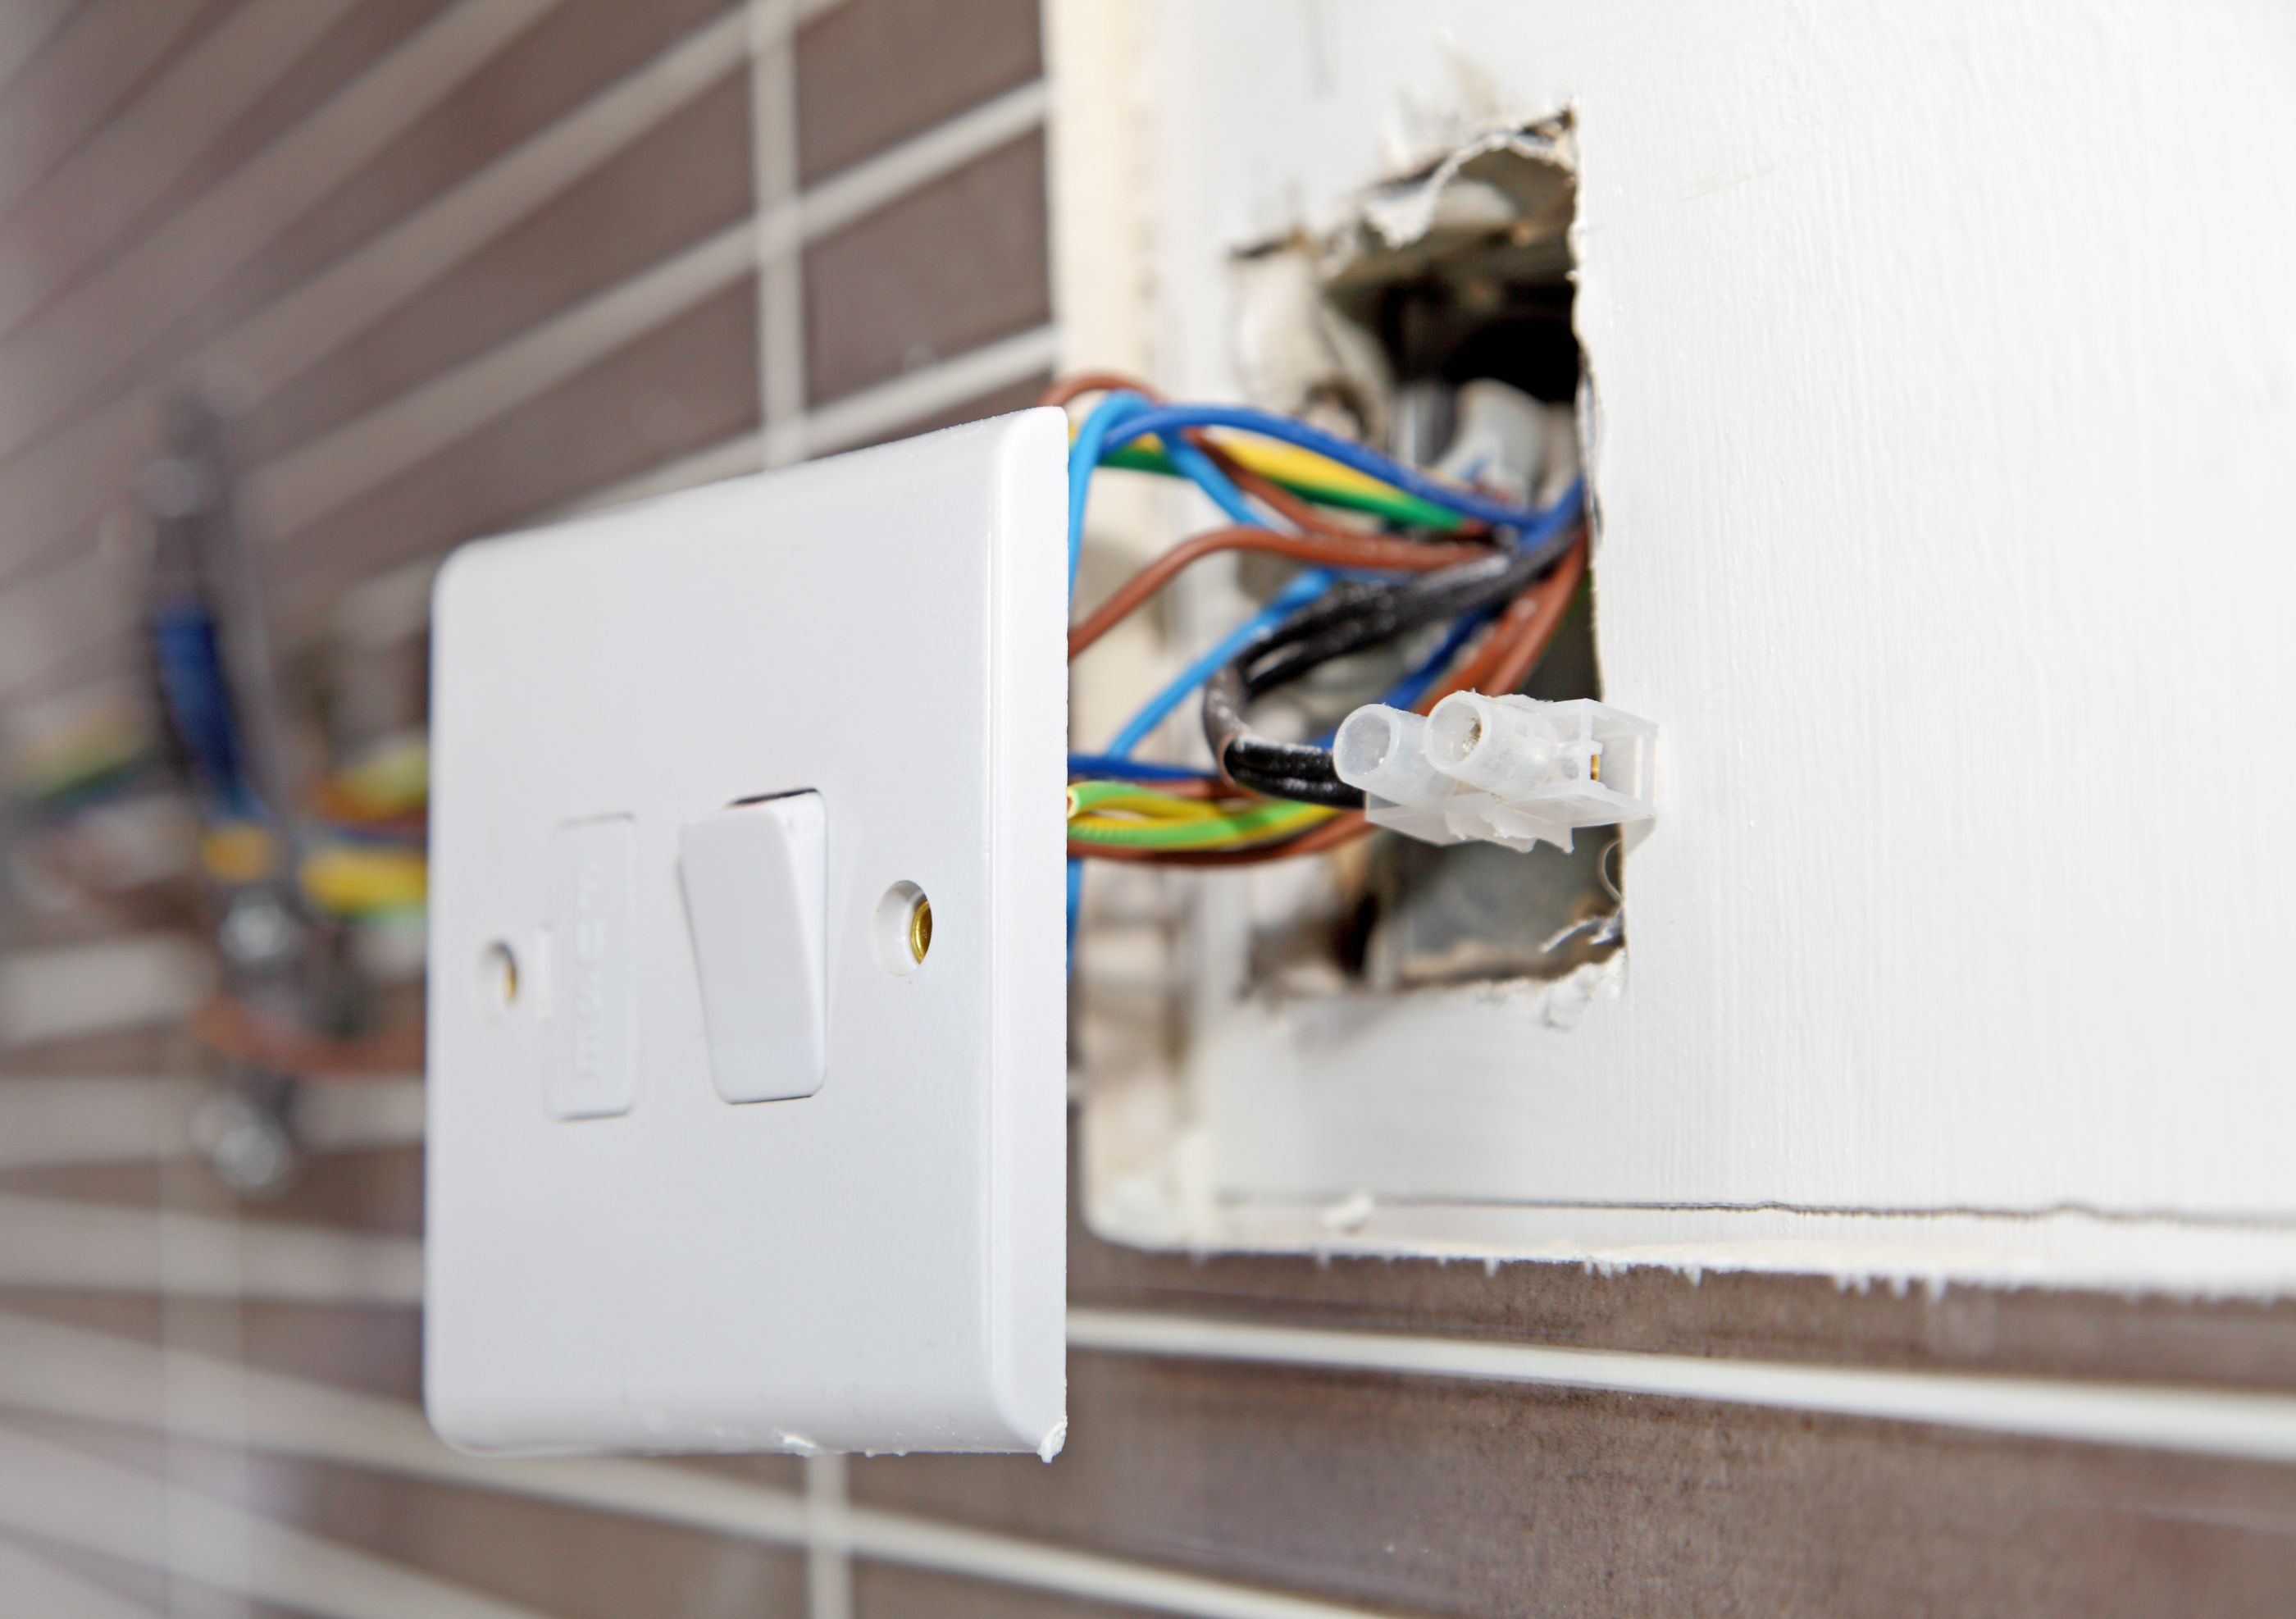 Troubleshooting Garbage Disposal Problems Wiring An Outlet Then Light Switch